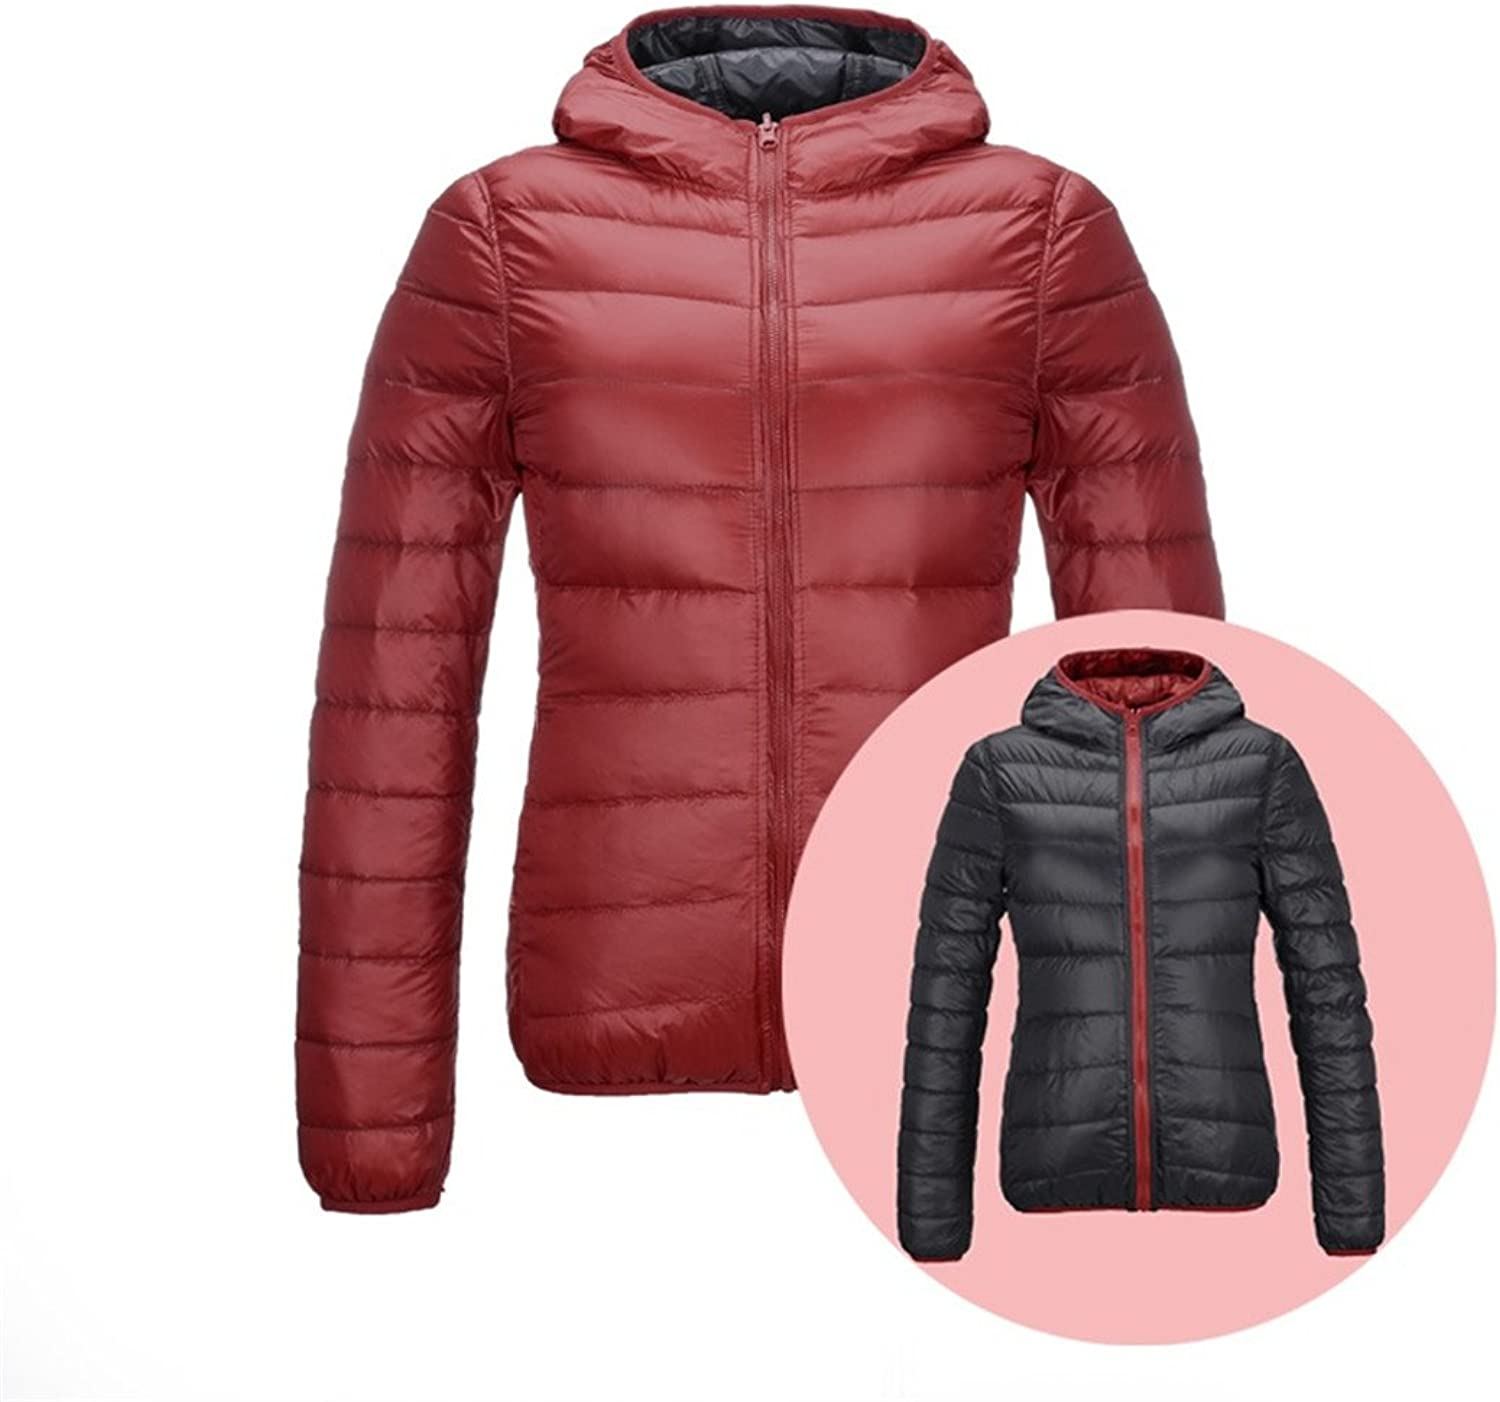 Basieng Women's UltraThin Down Jacket DoubleSided Reversible Jacket